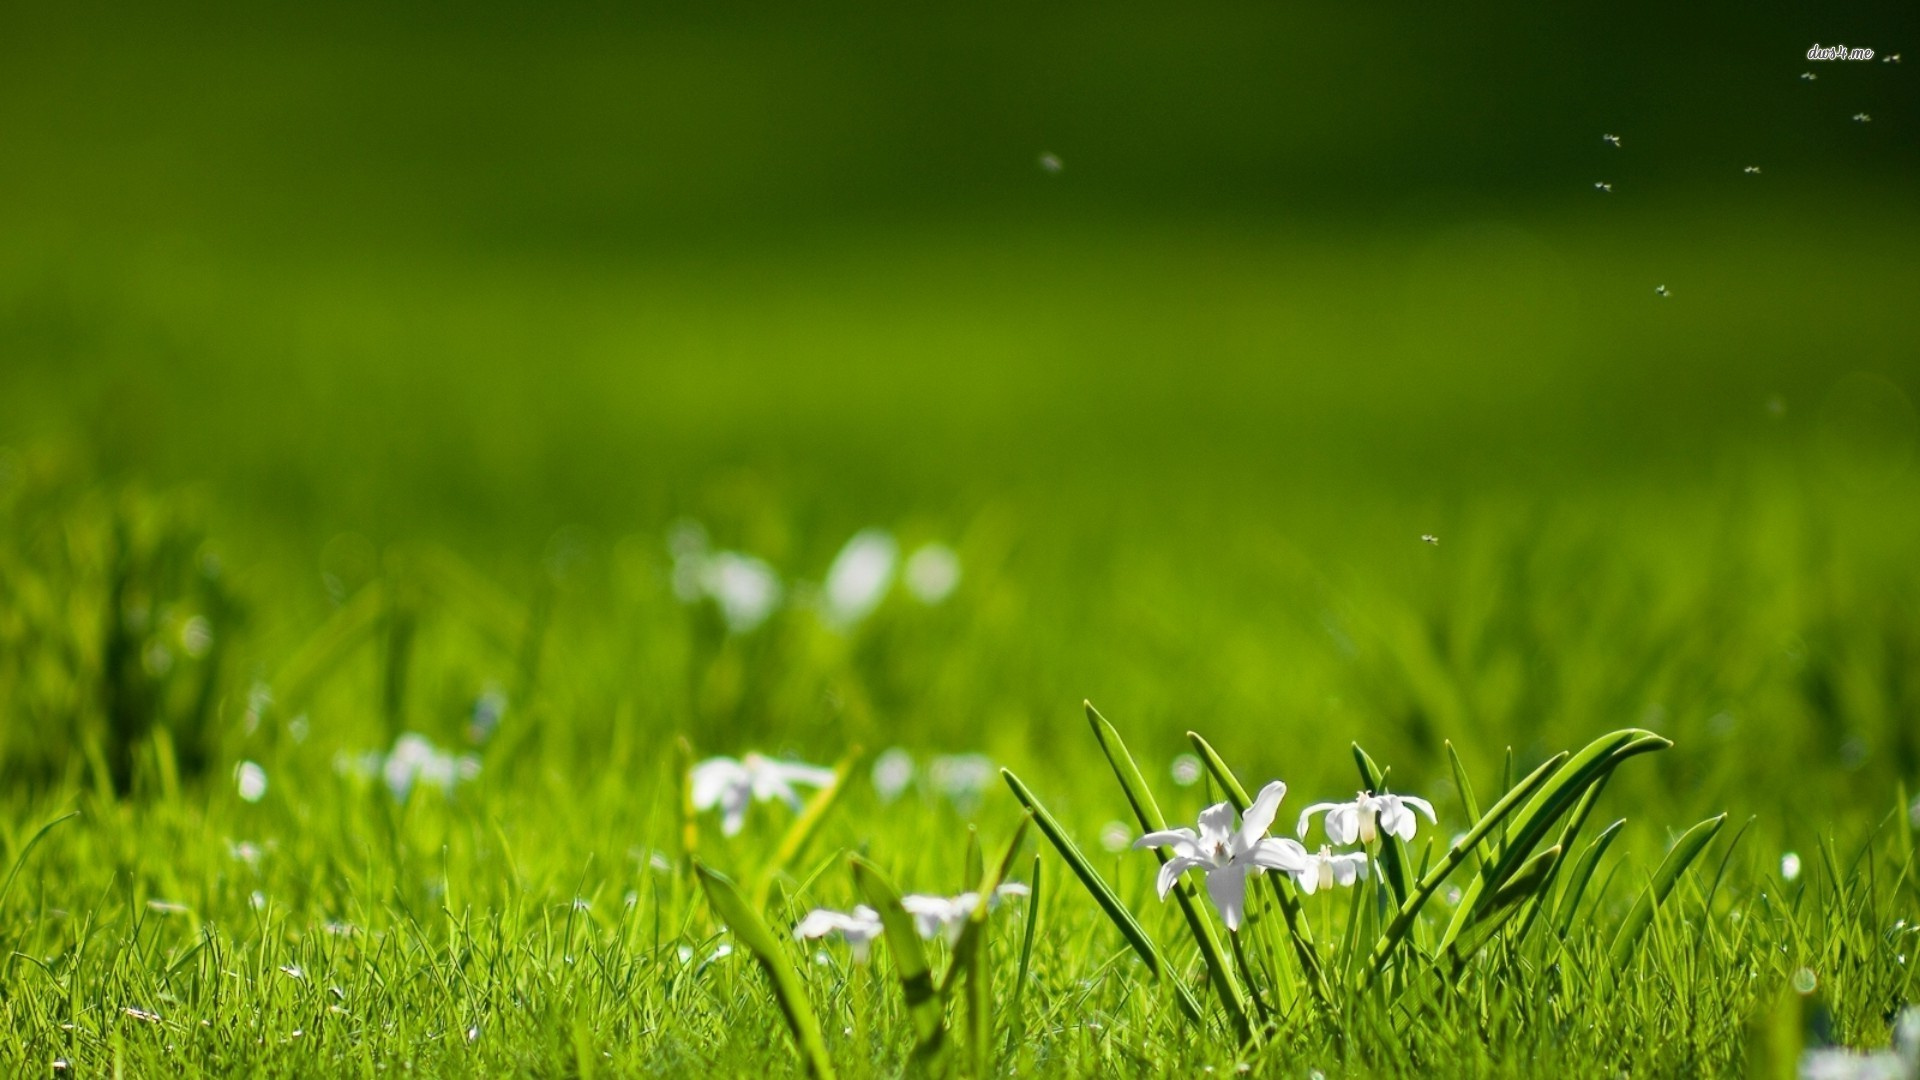 White flowers in grass 9 cool wallpaper hdflowerwallpaper white flowers in grass free wallpaper mightylinksfo Choice Image